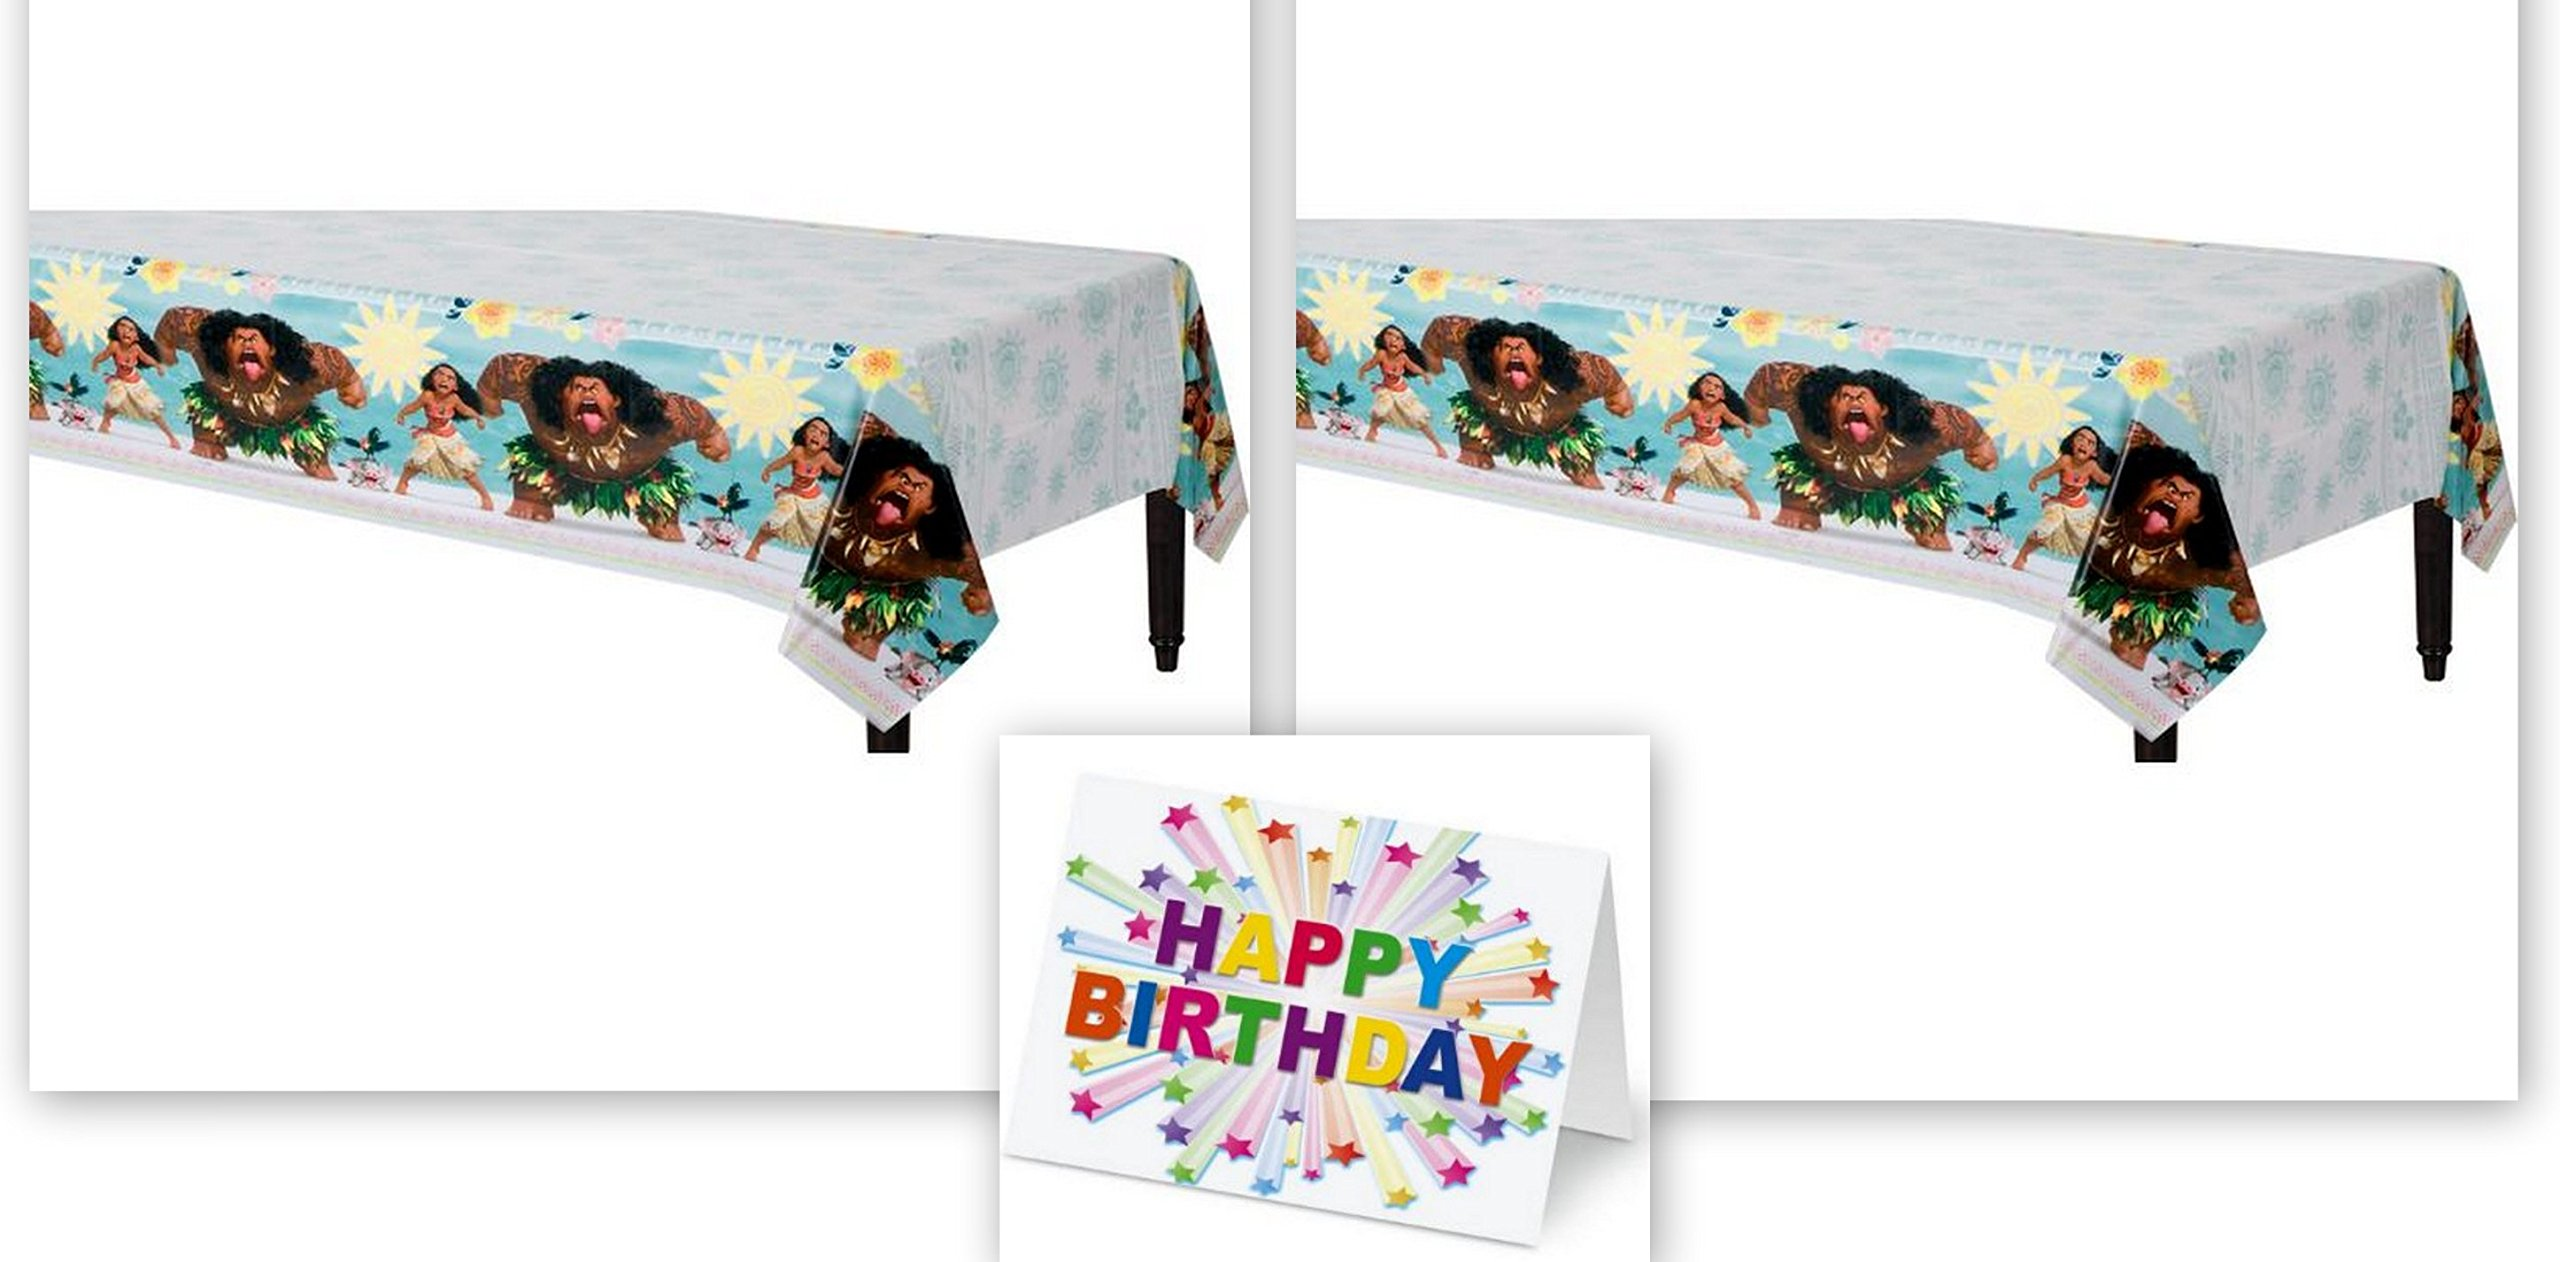 Moana Disney Hawaii Beach Party Tablecover Tablecloth Birthday Party Supplies (2-Pack) Plus Birthday Card by HALL